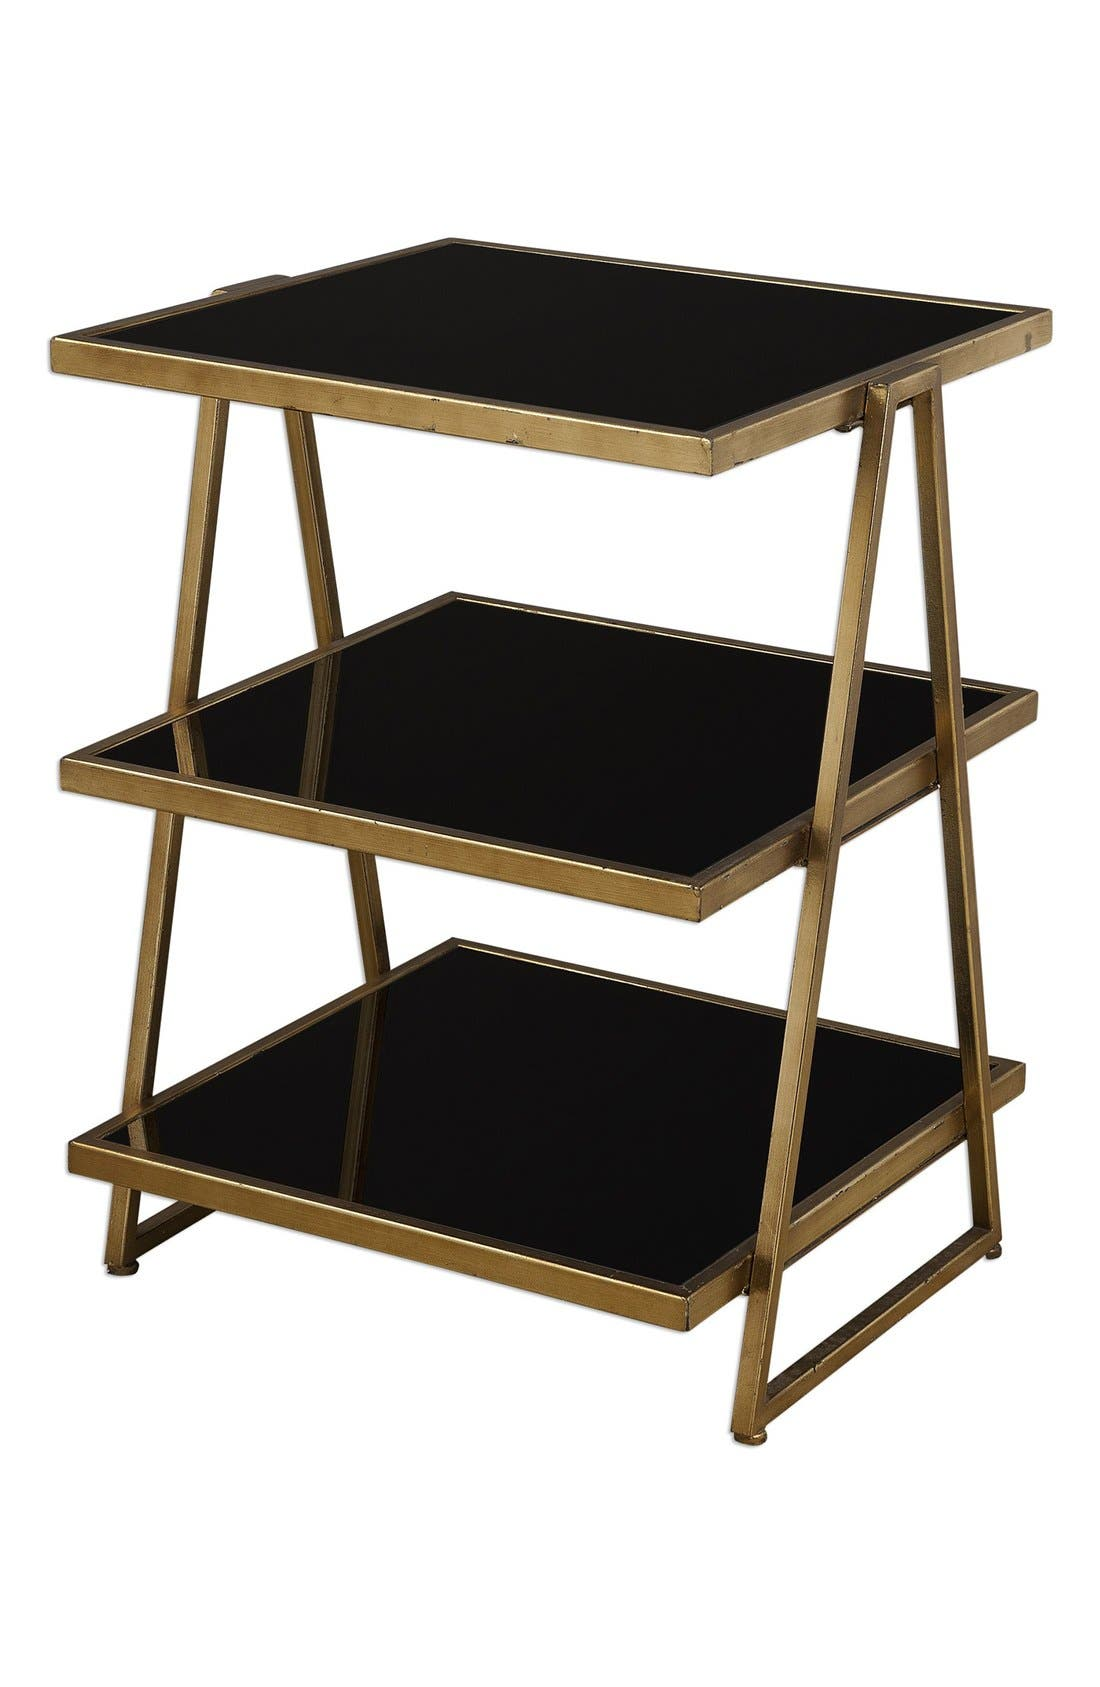 Main Image - Uttermost 'Garrity' Accent Table